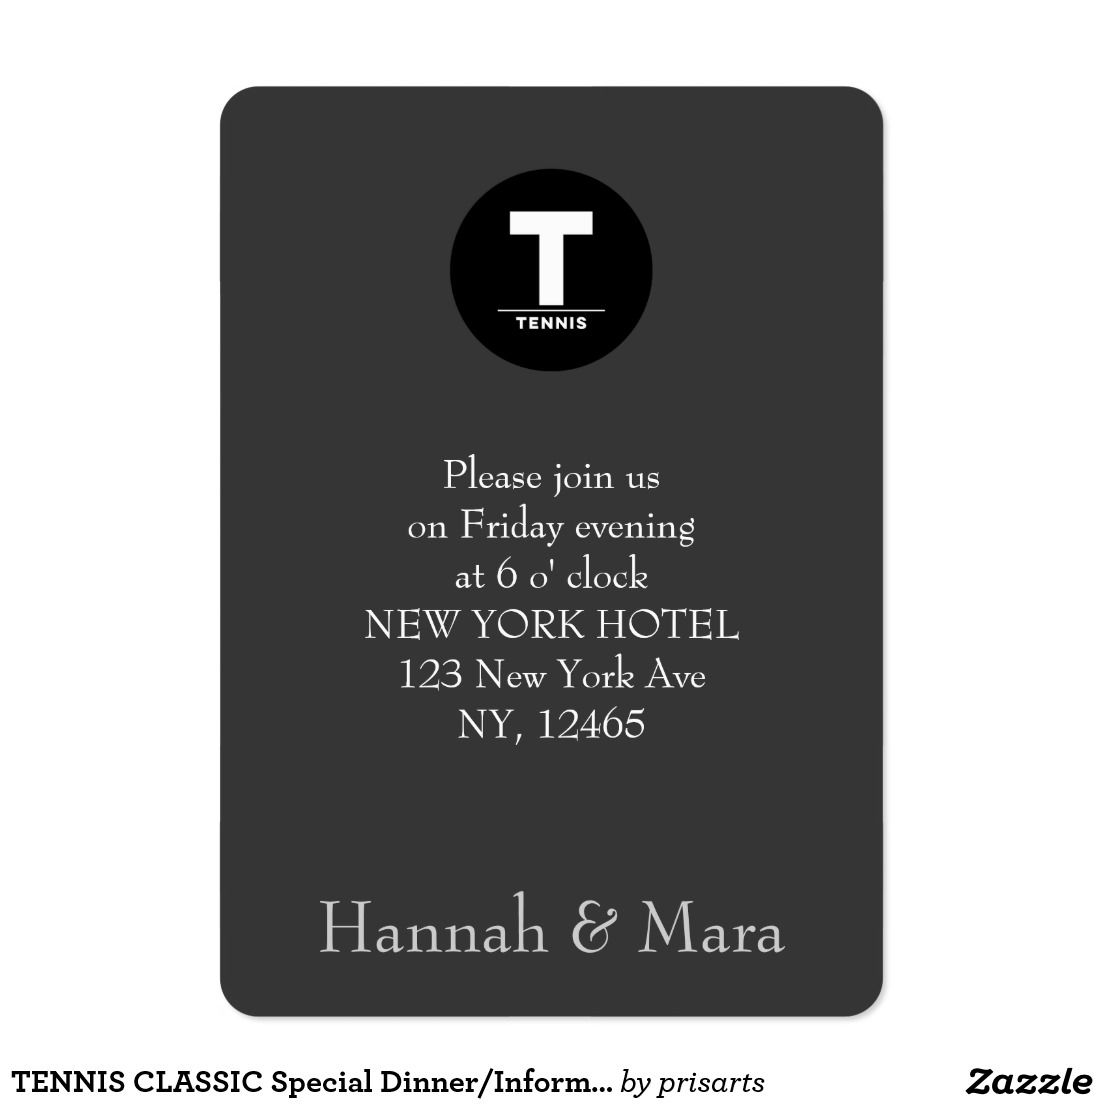 TENNIS CLASSIC Special Dinner/Information Business Card   Best ...